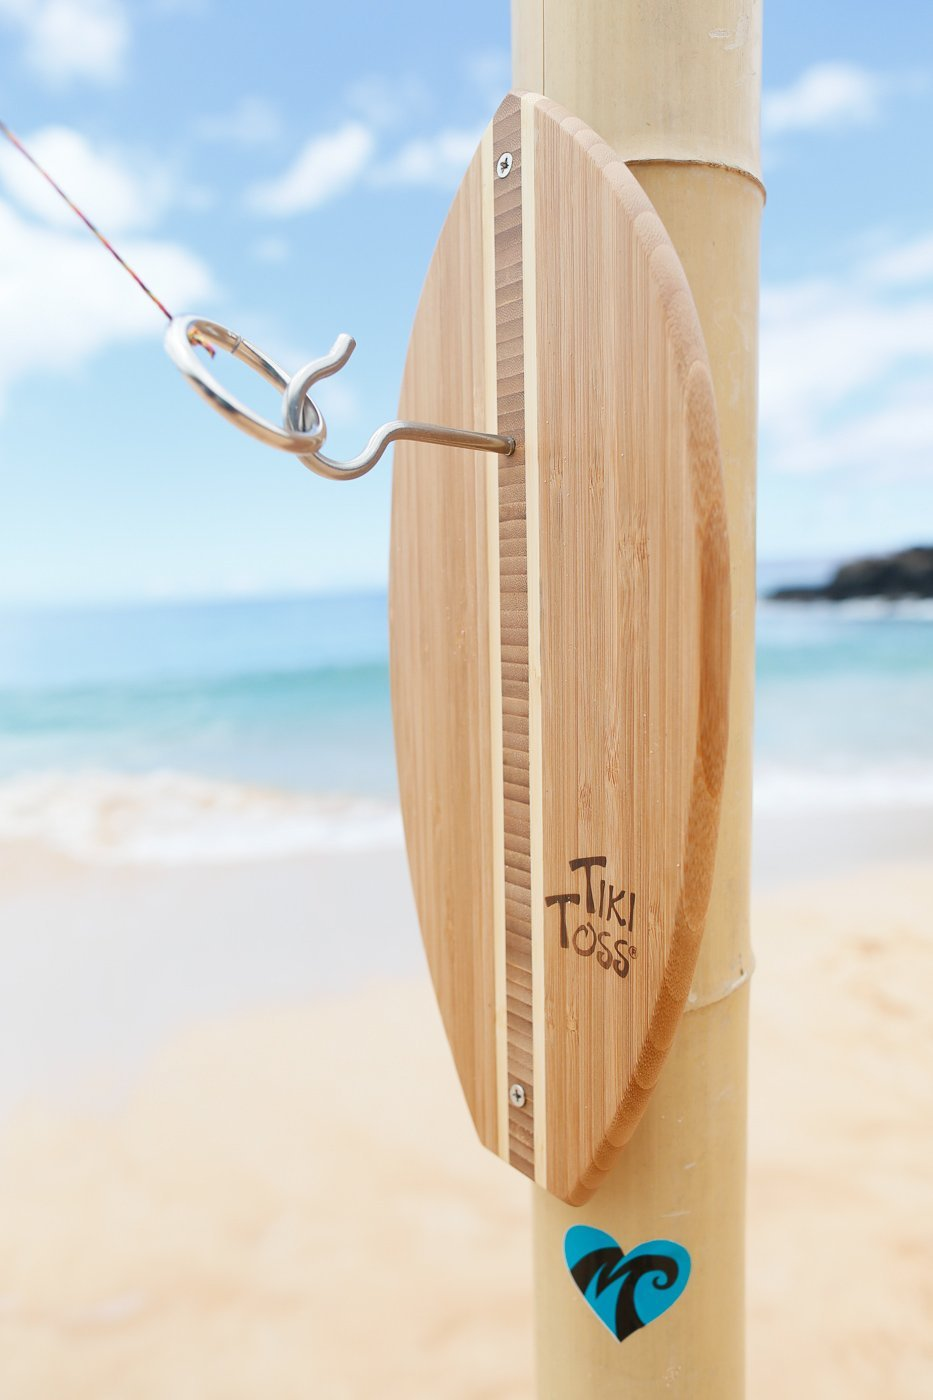 Tiki Toss – Hook And Ring Game